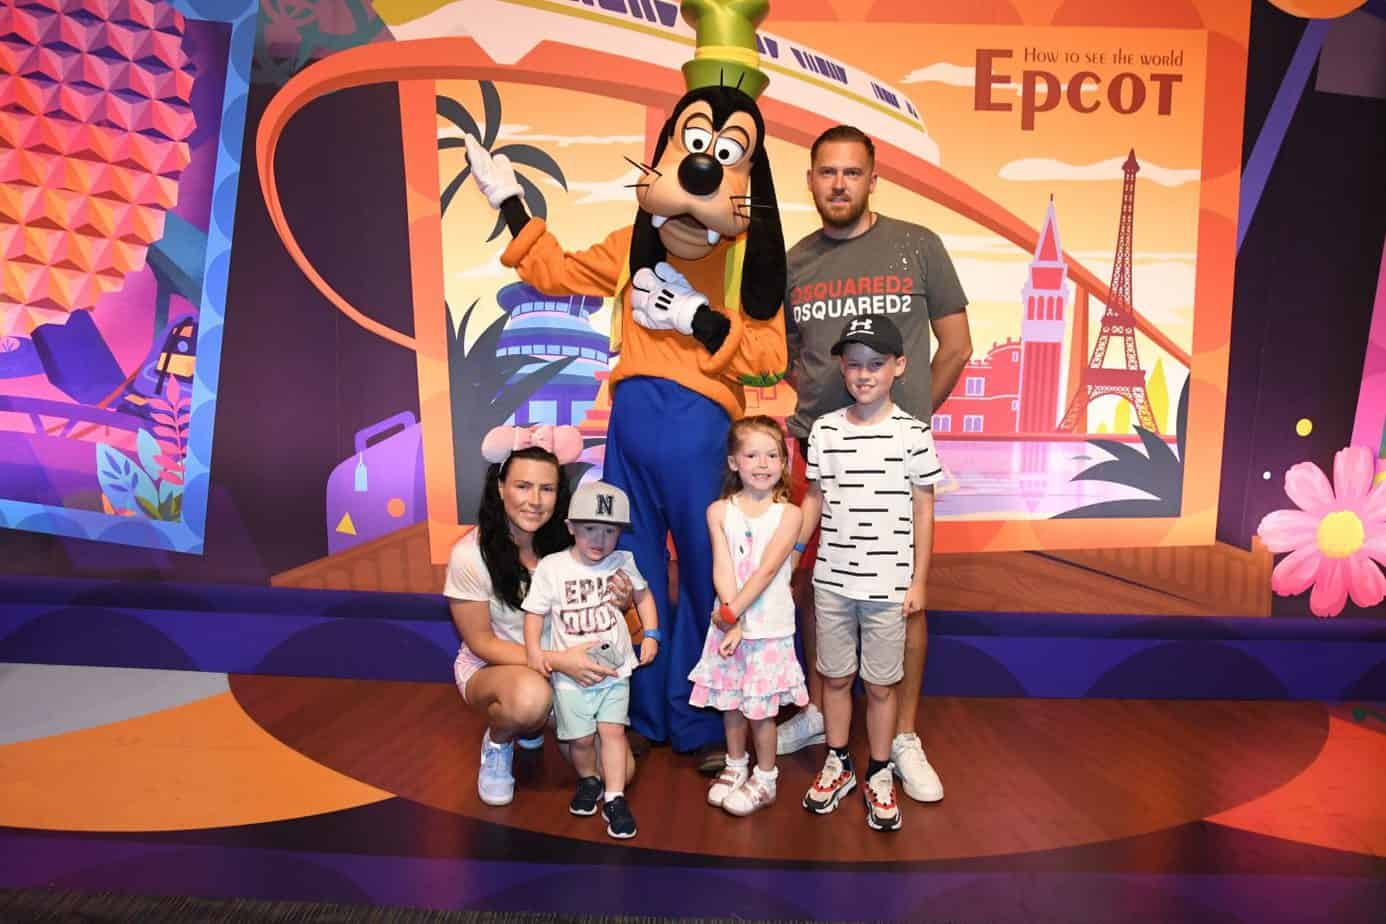 Meeting Goofy in Future World at Epcot